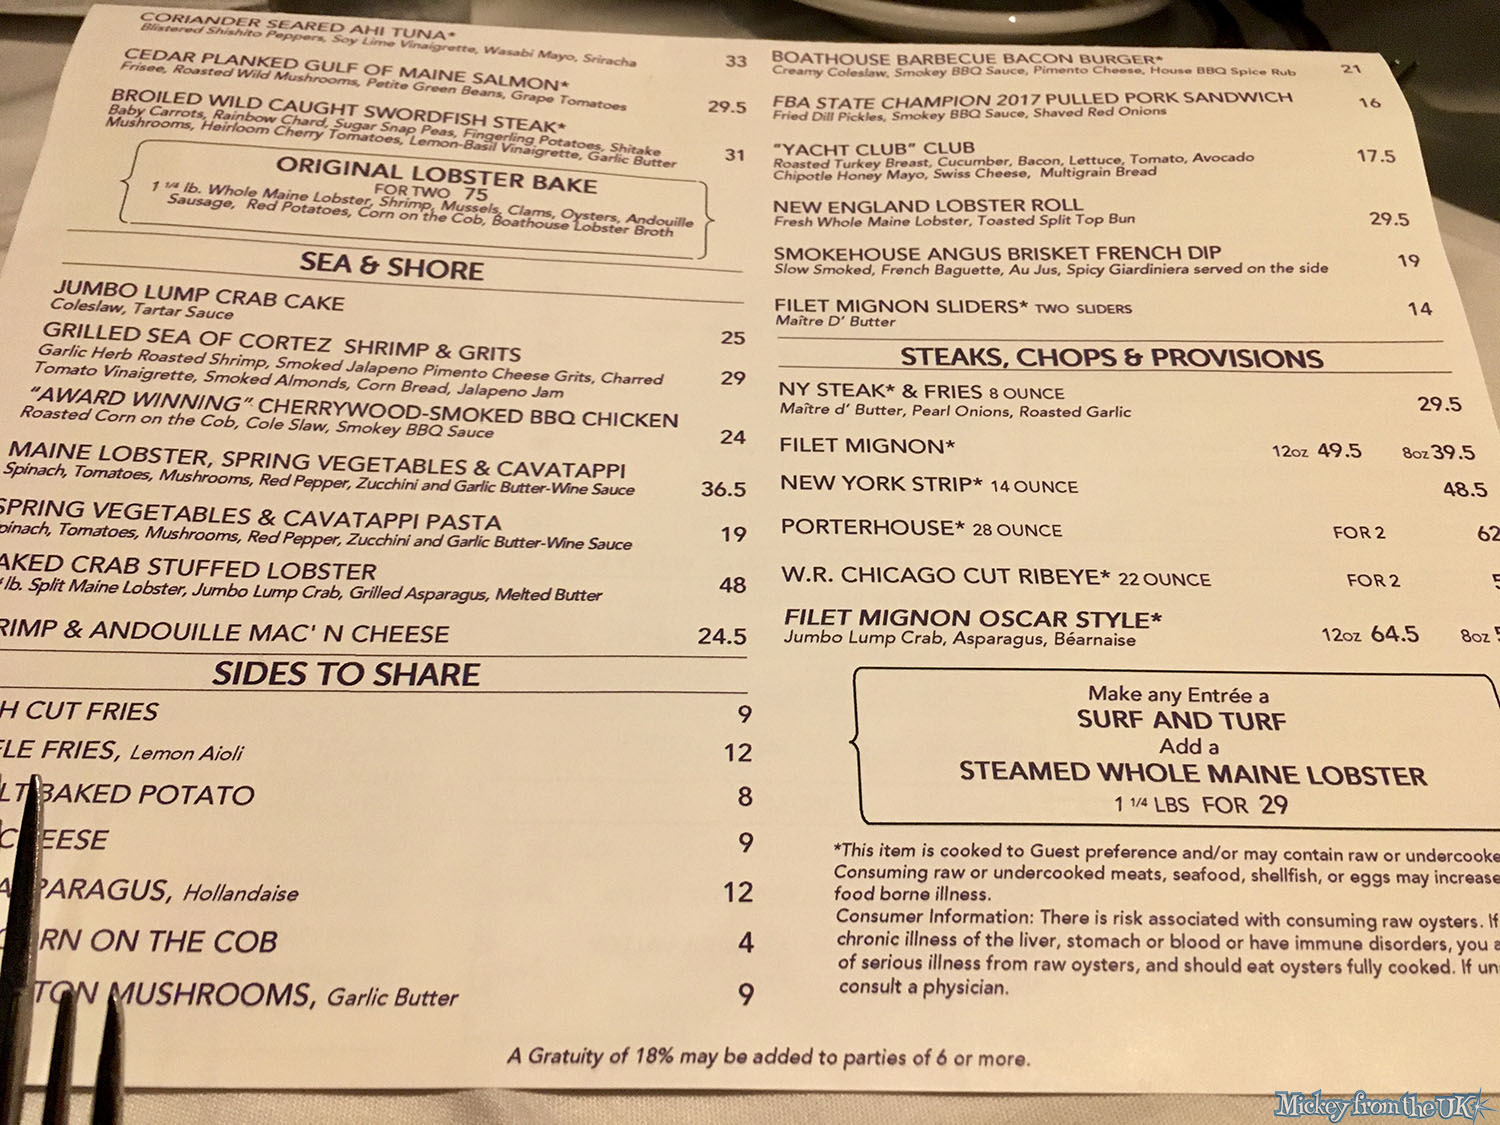 Boathouse Disney Springs Menu